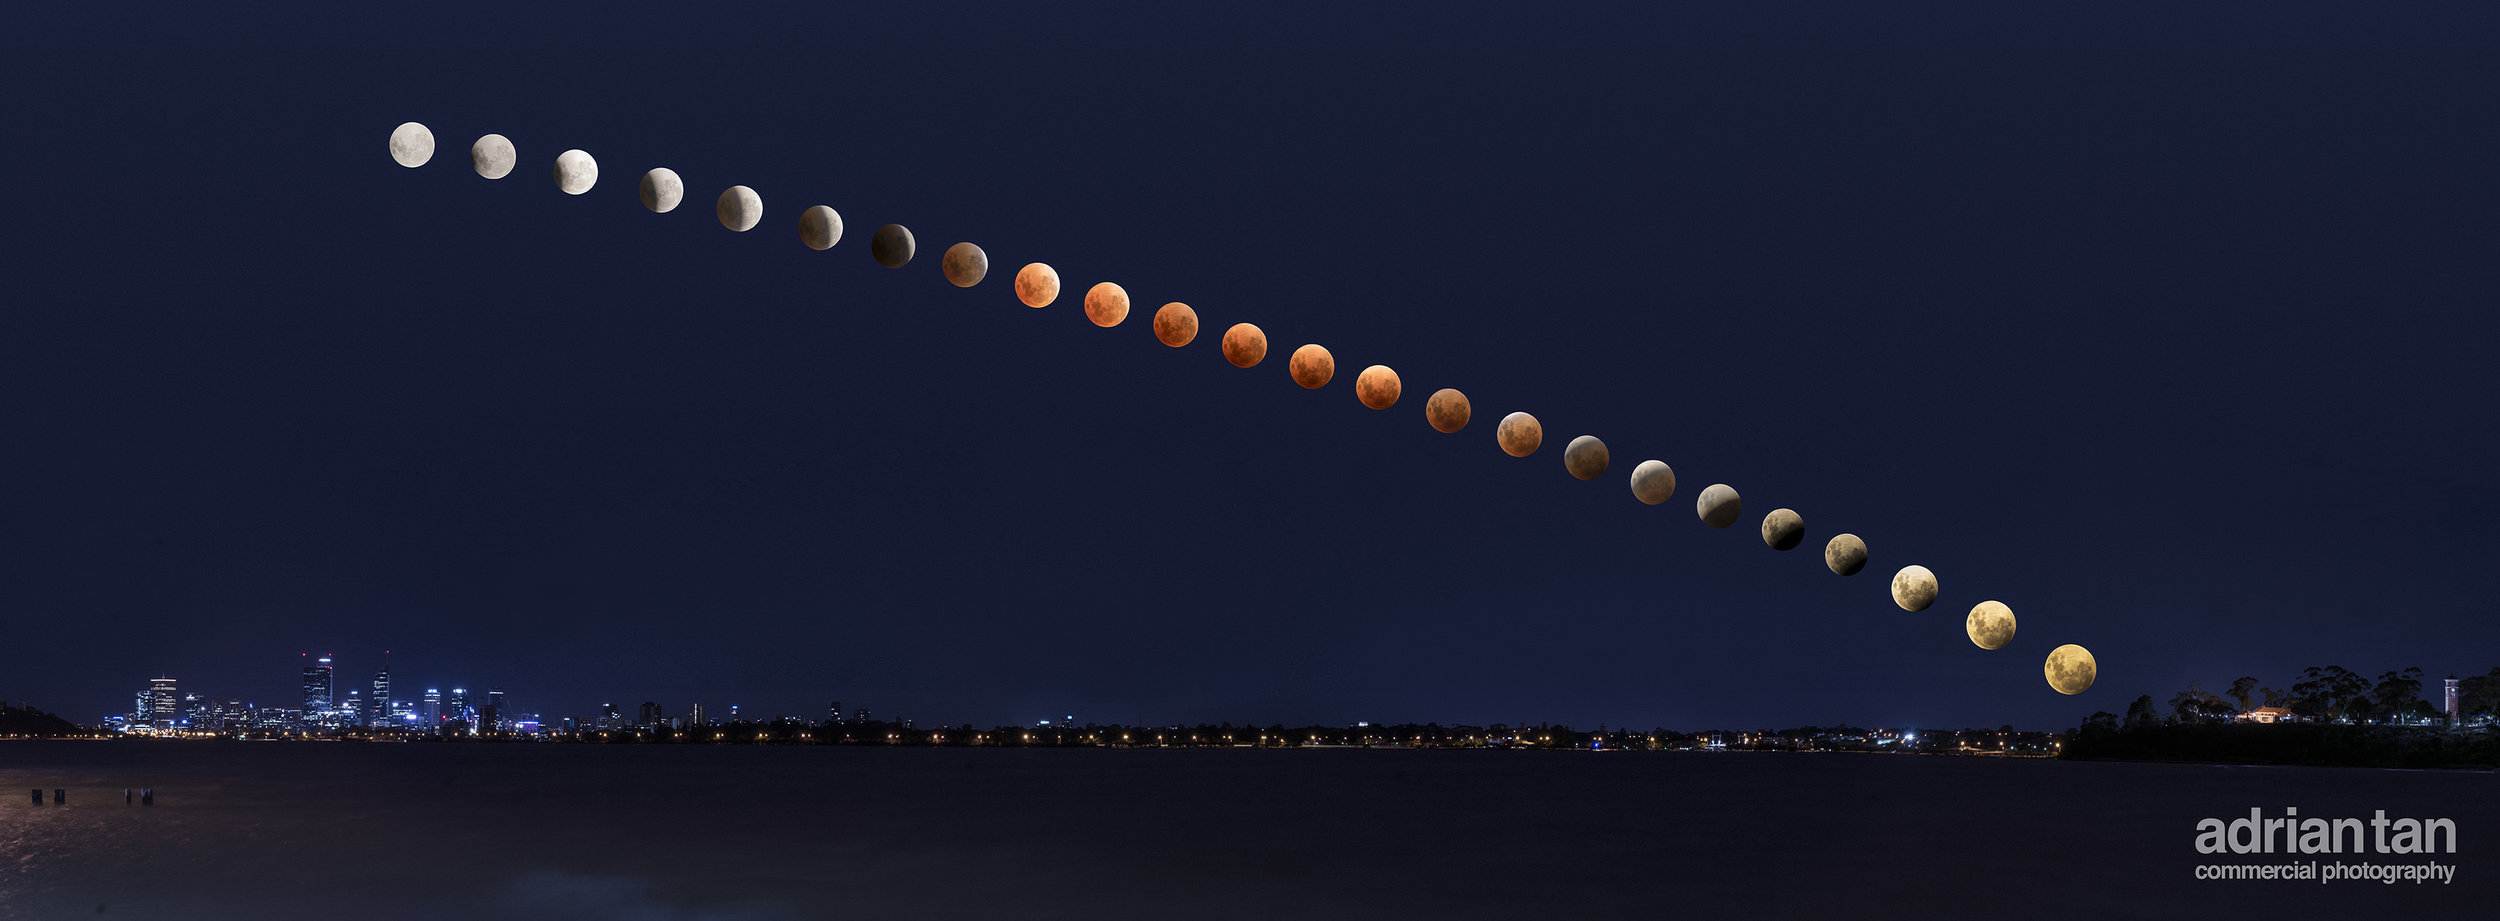 Supermoon Blue moon Lunar Eclipse Finished Image